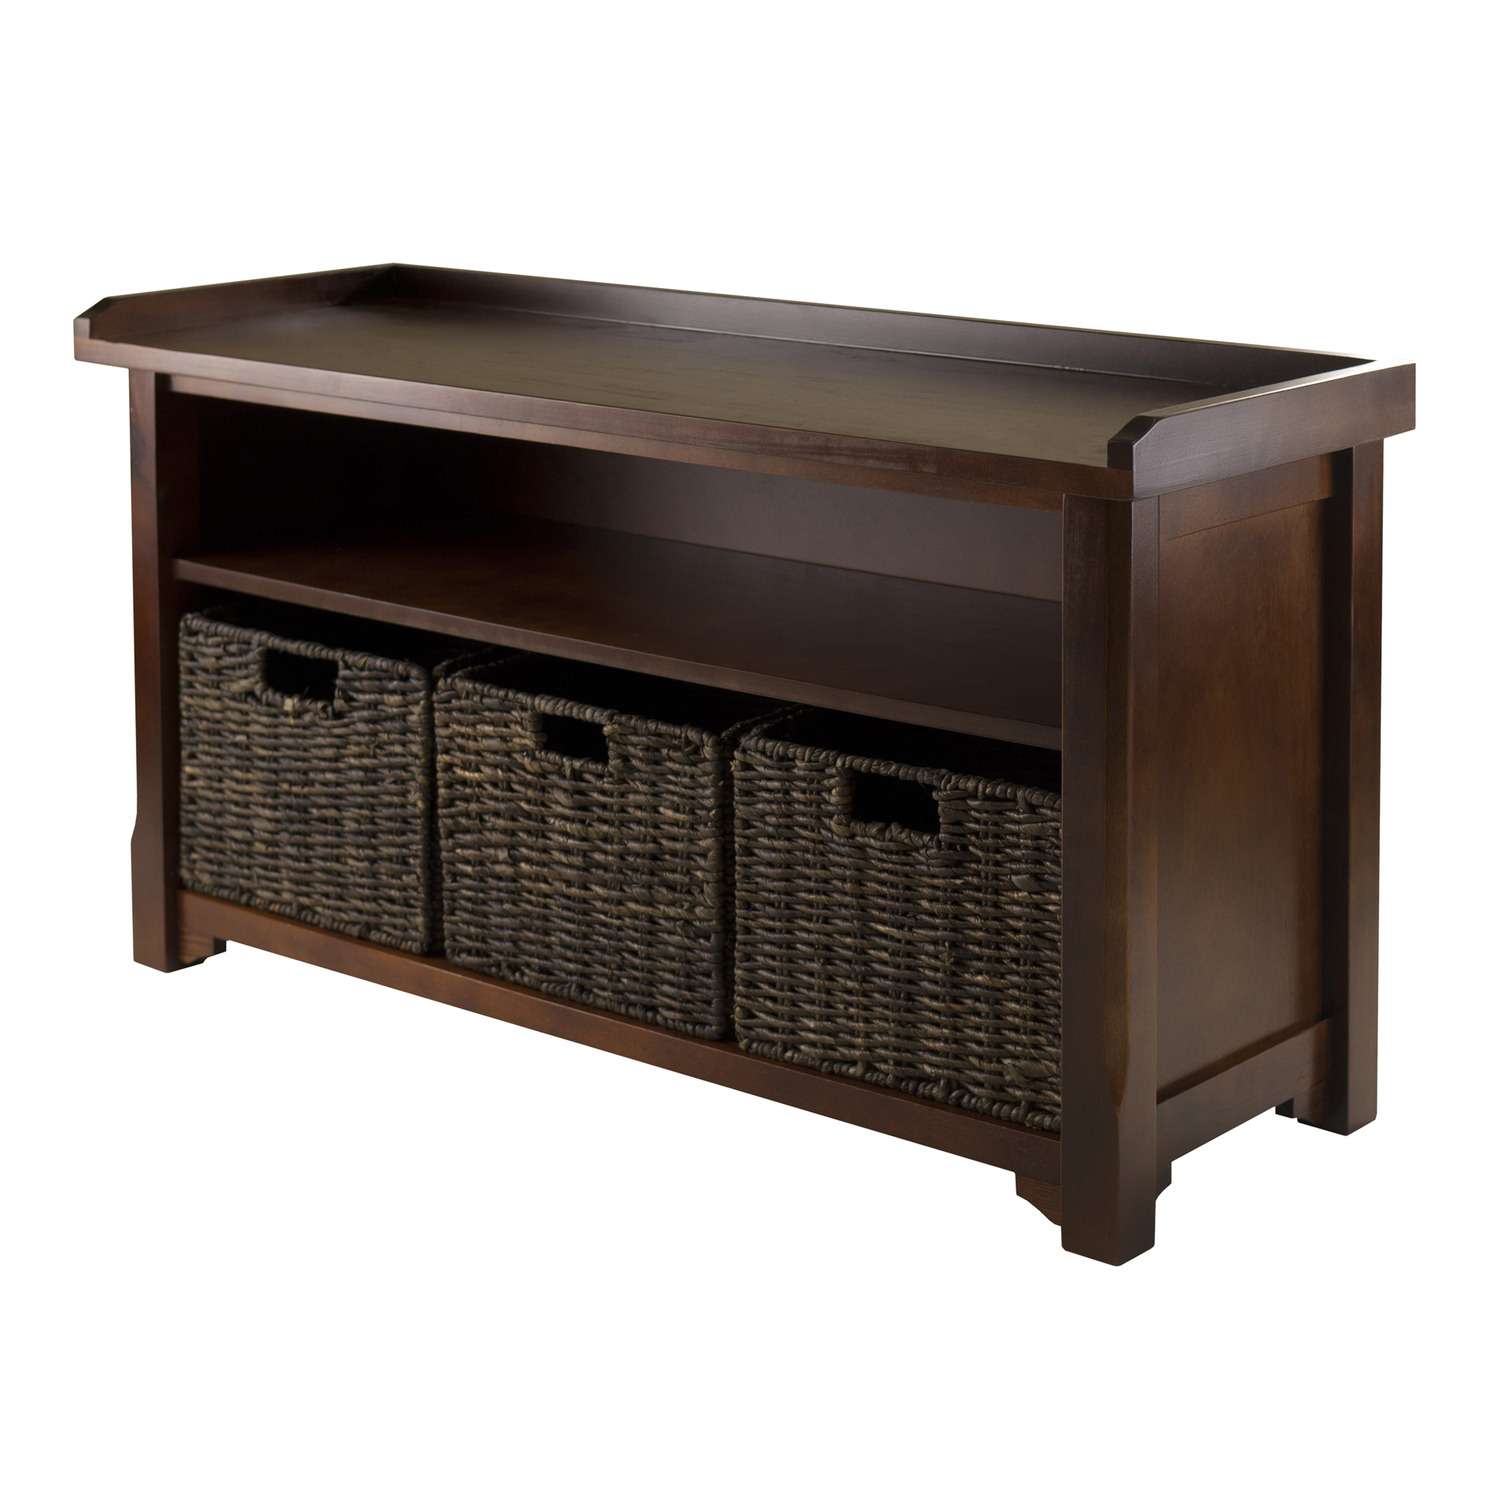 Winsome wood granville storage bench by oj commerce 94338 Storage benches